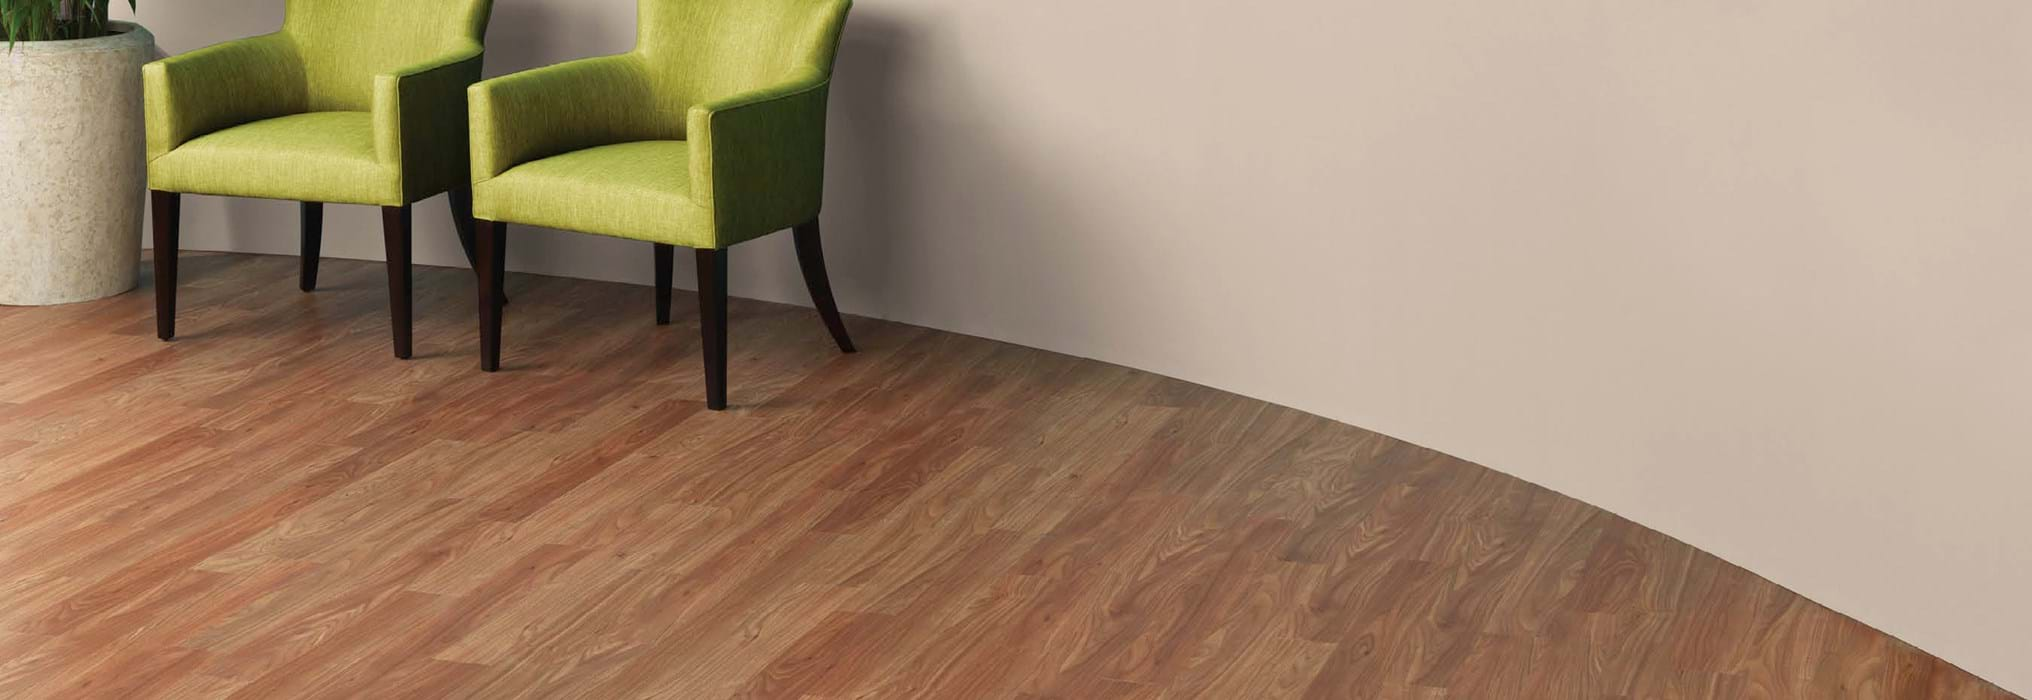 Amtico International: Warm Teak - AM5W2517